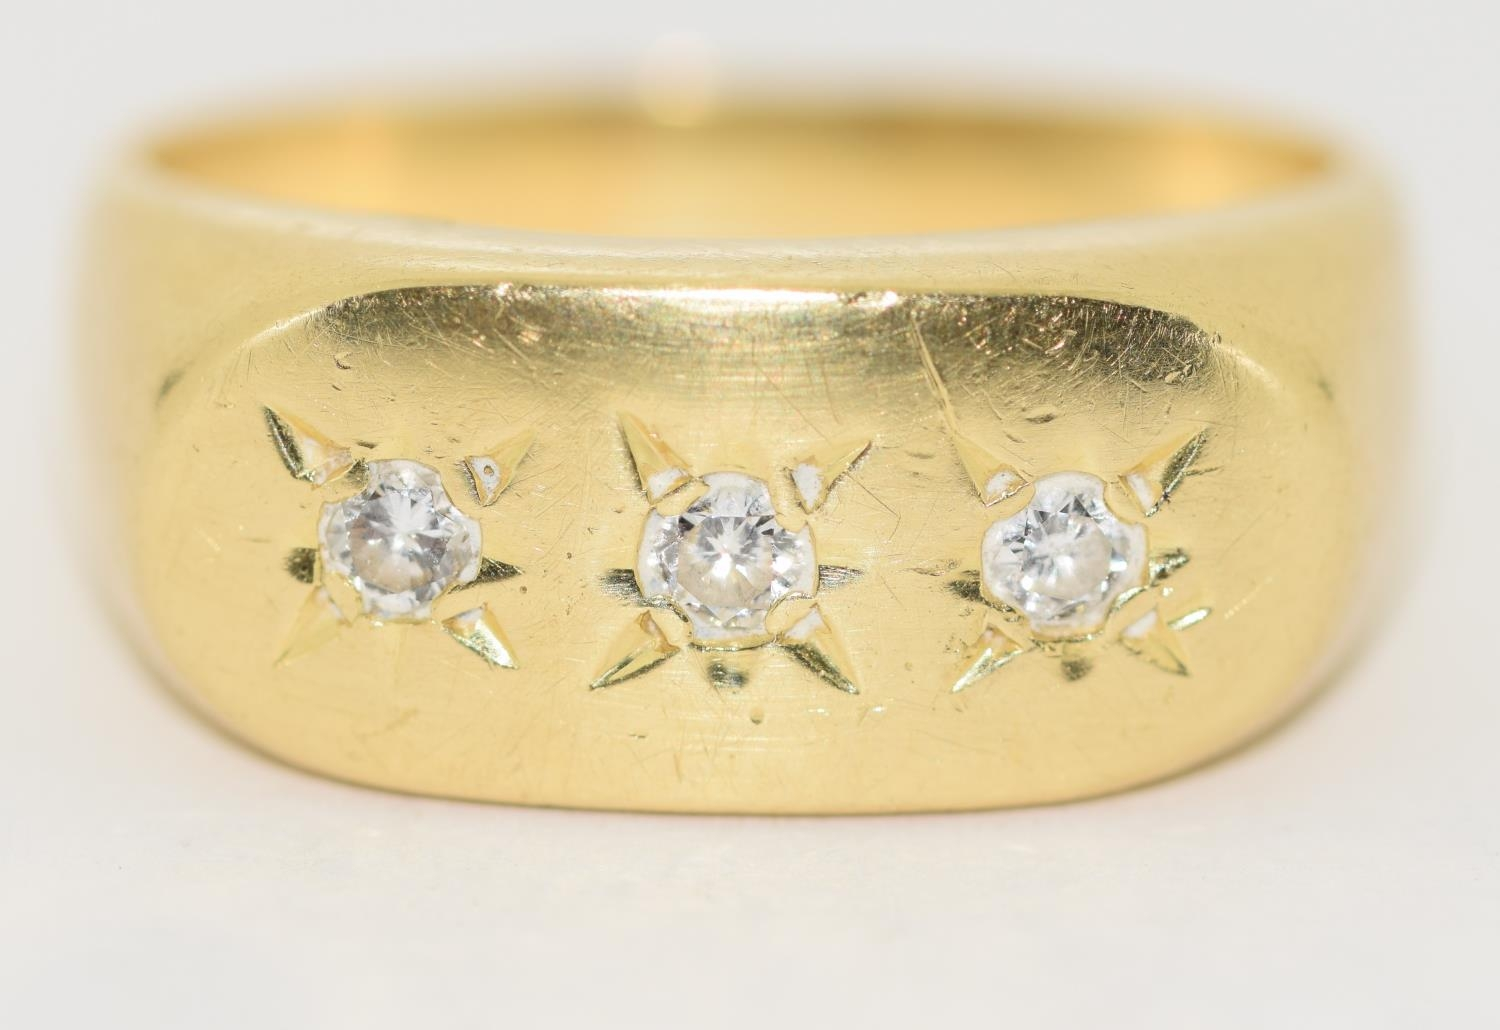 18ct gold Gypsy 3 stone diamond ring size S - Image 2 of 5